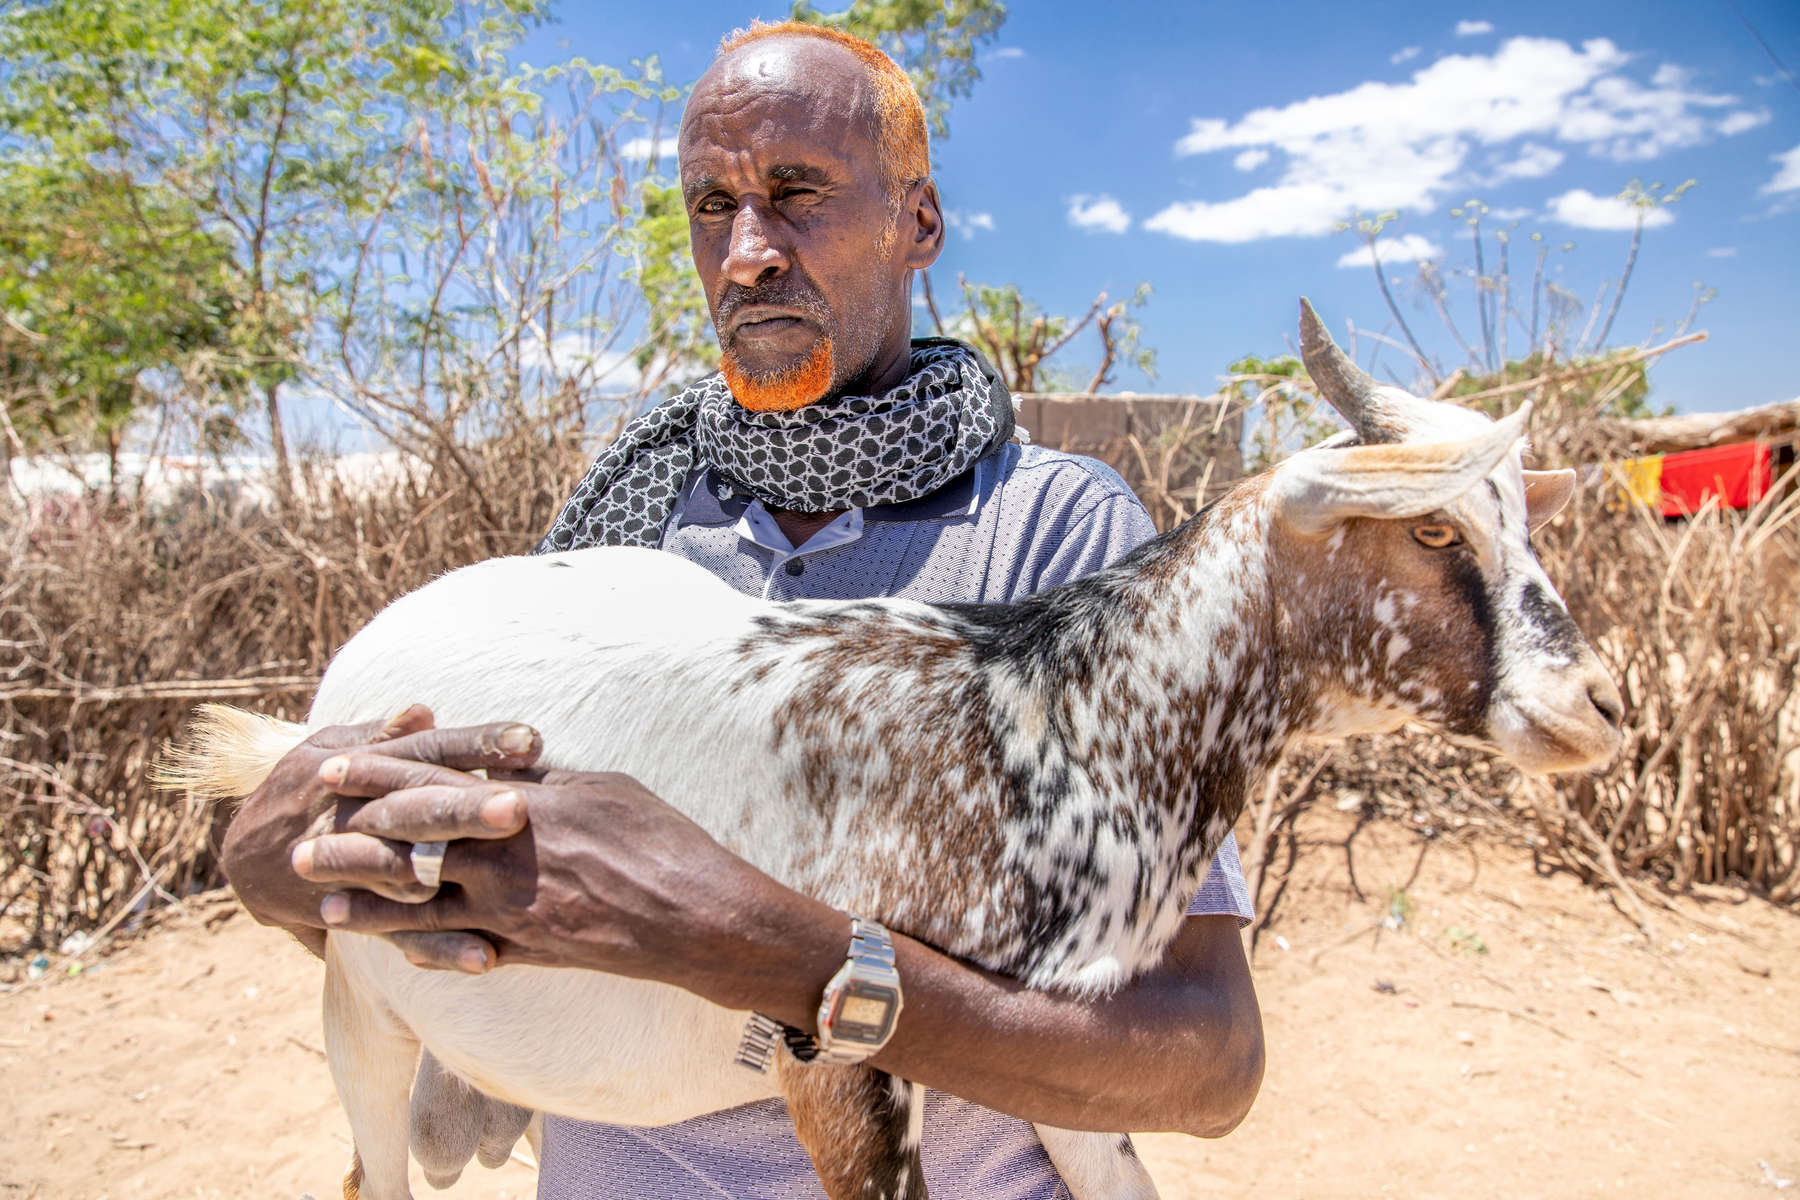 "Ali, 50, is a livestock trader. Through the PRIME project, Mercy Corps opened a slaughterhouse in nearby Jijiga that buys animals from him. Since he no longer has to export them to Addis Ababa on the other side of the country, his livelihood has improved significantly.As climate change gets worse, Ali says, local pastoralists are bracing for longer droughts. ""People in this area predict rain through their experience and using the stars,"" he says. ""They know how to forecast it very well. They see the stars and the signs in the wind and use different indicators to predict the coming rain season. This year they are very afraid."""